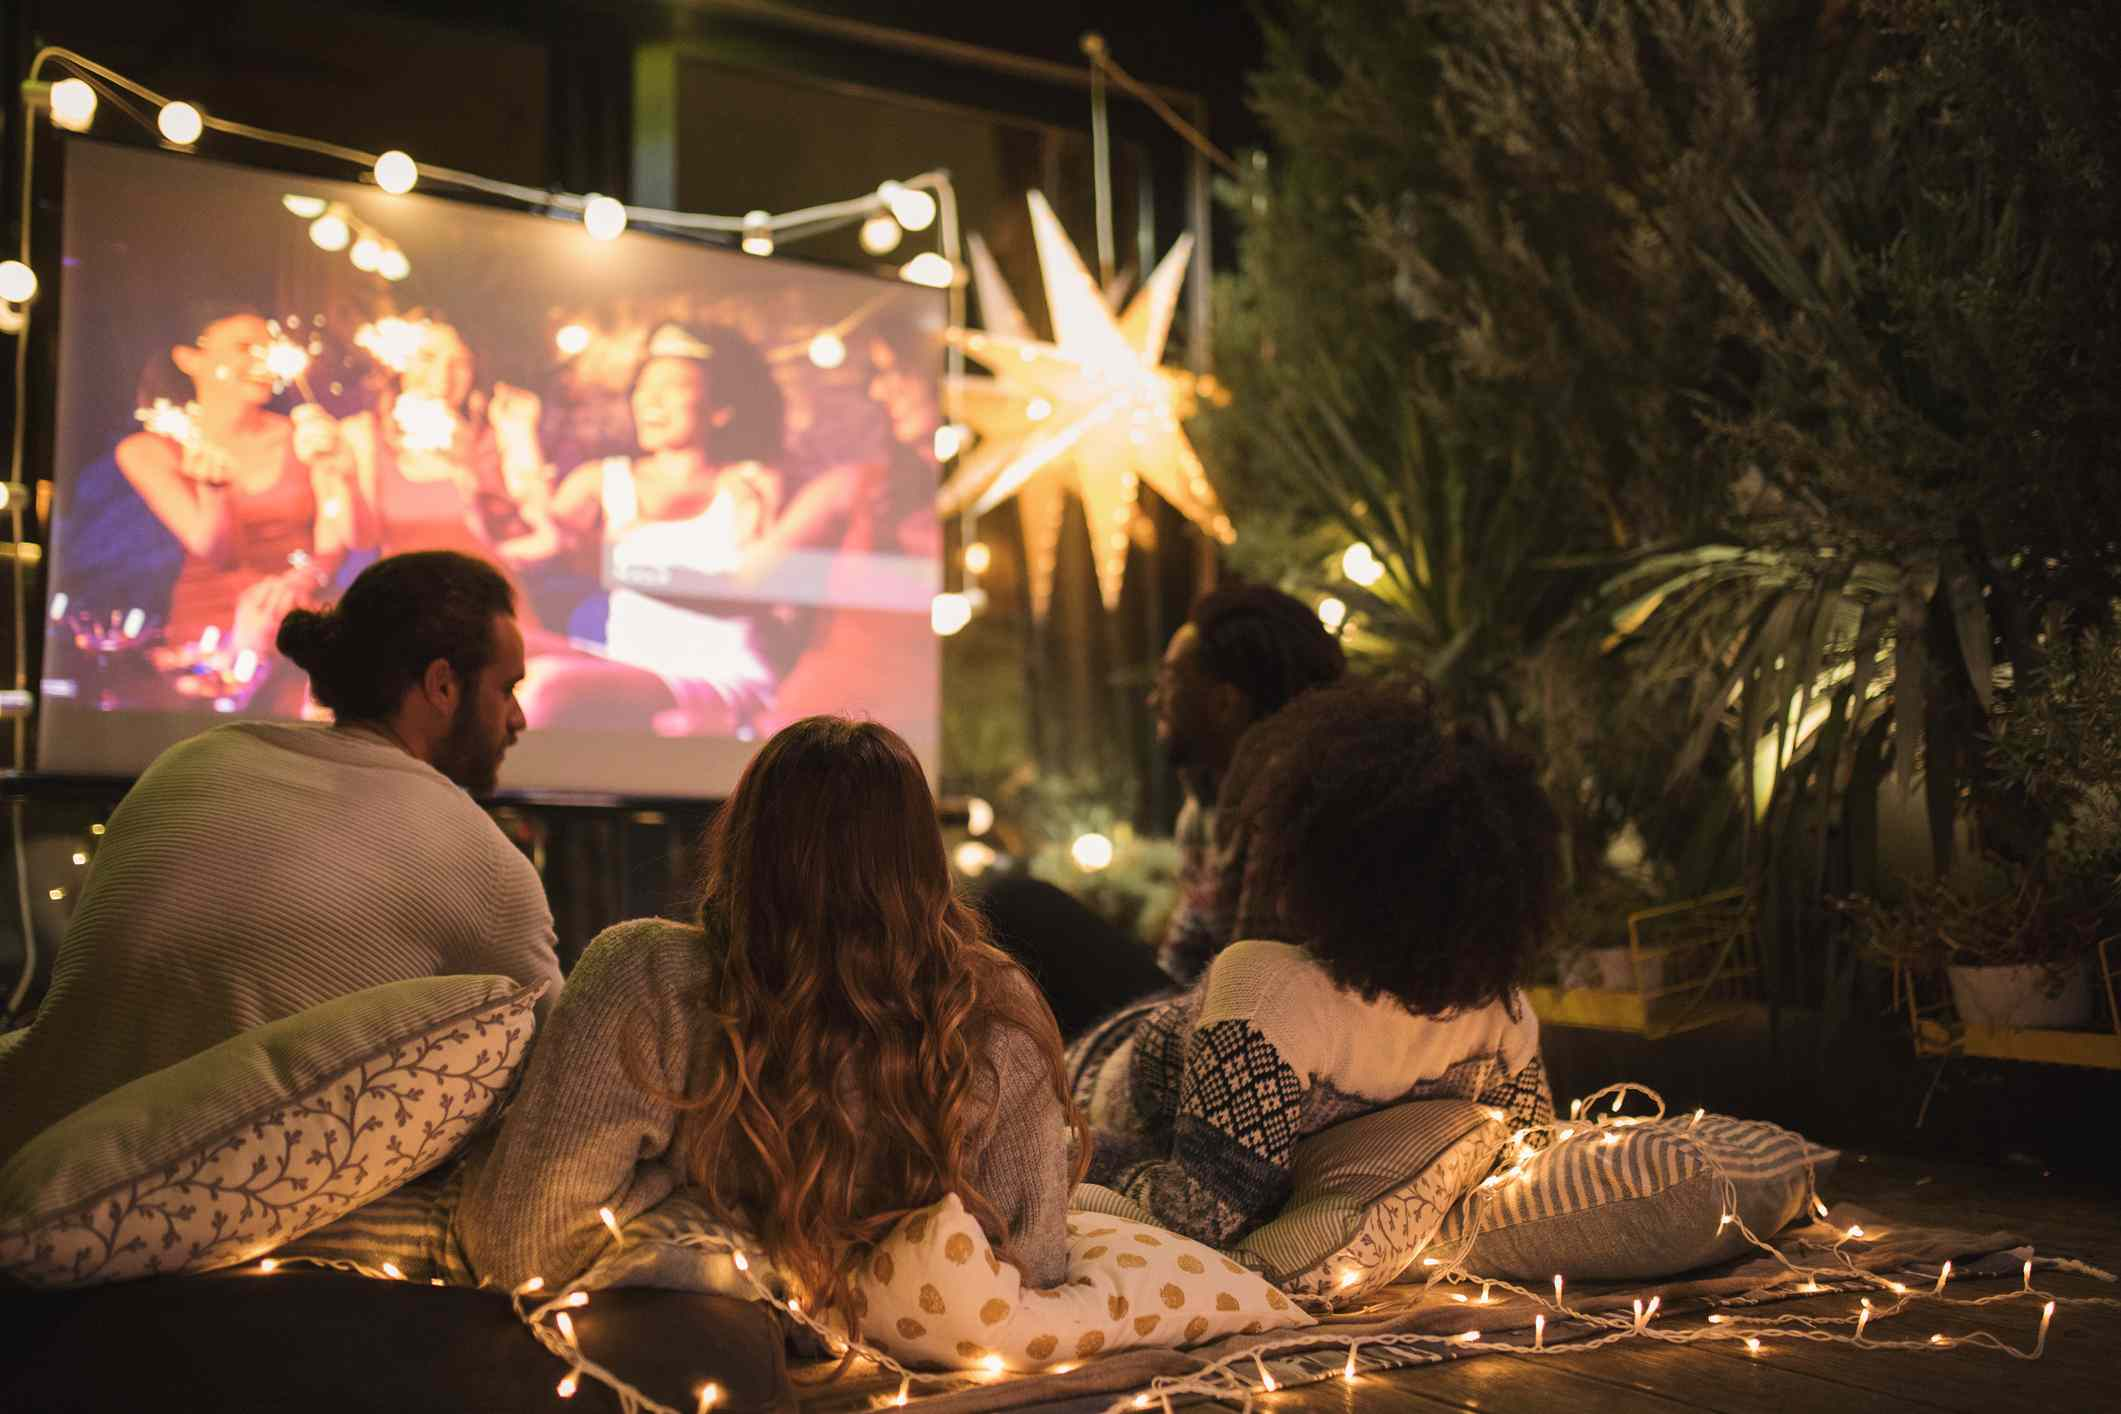 Group of young people watch a projected movie outdoors